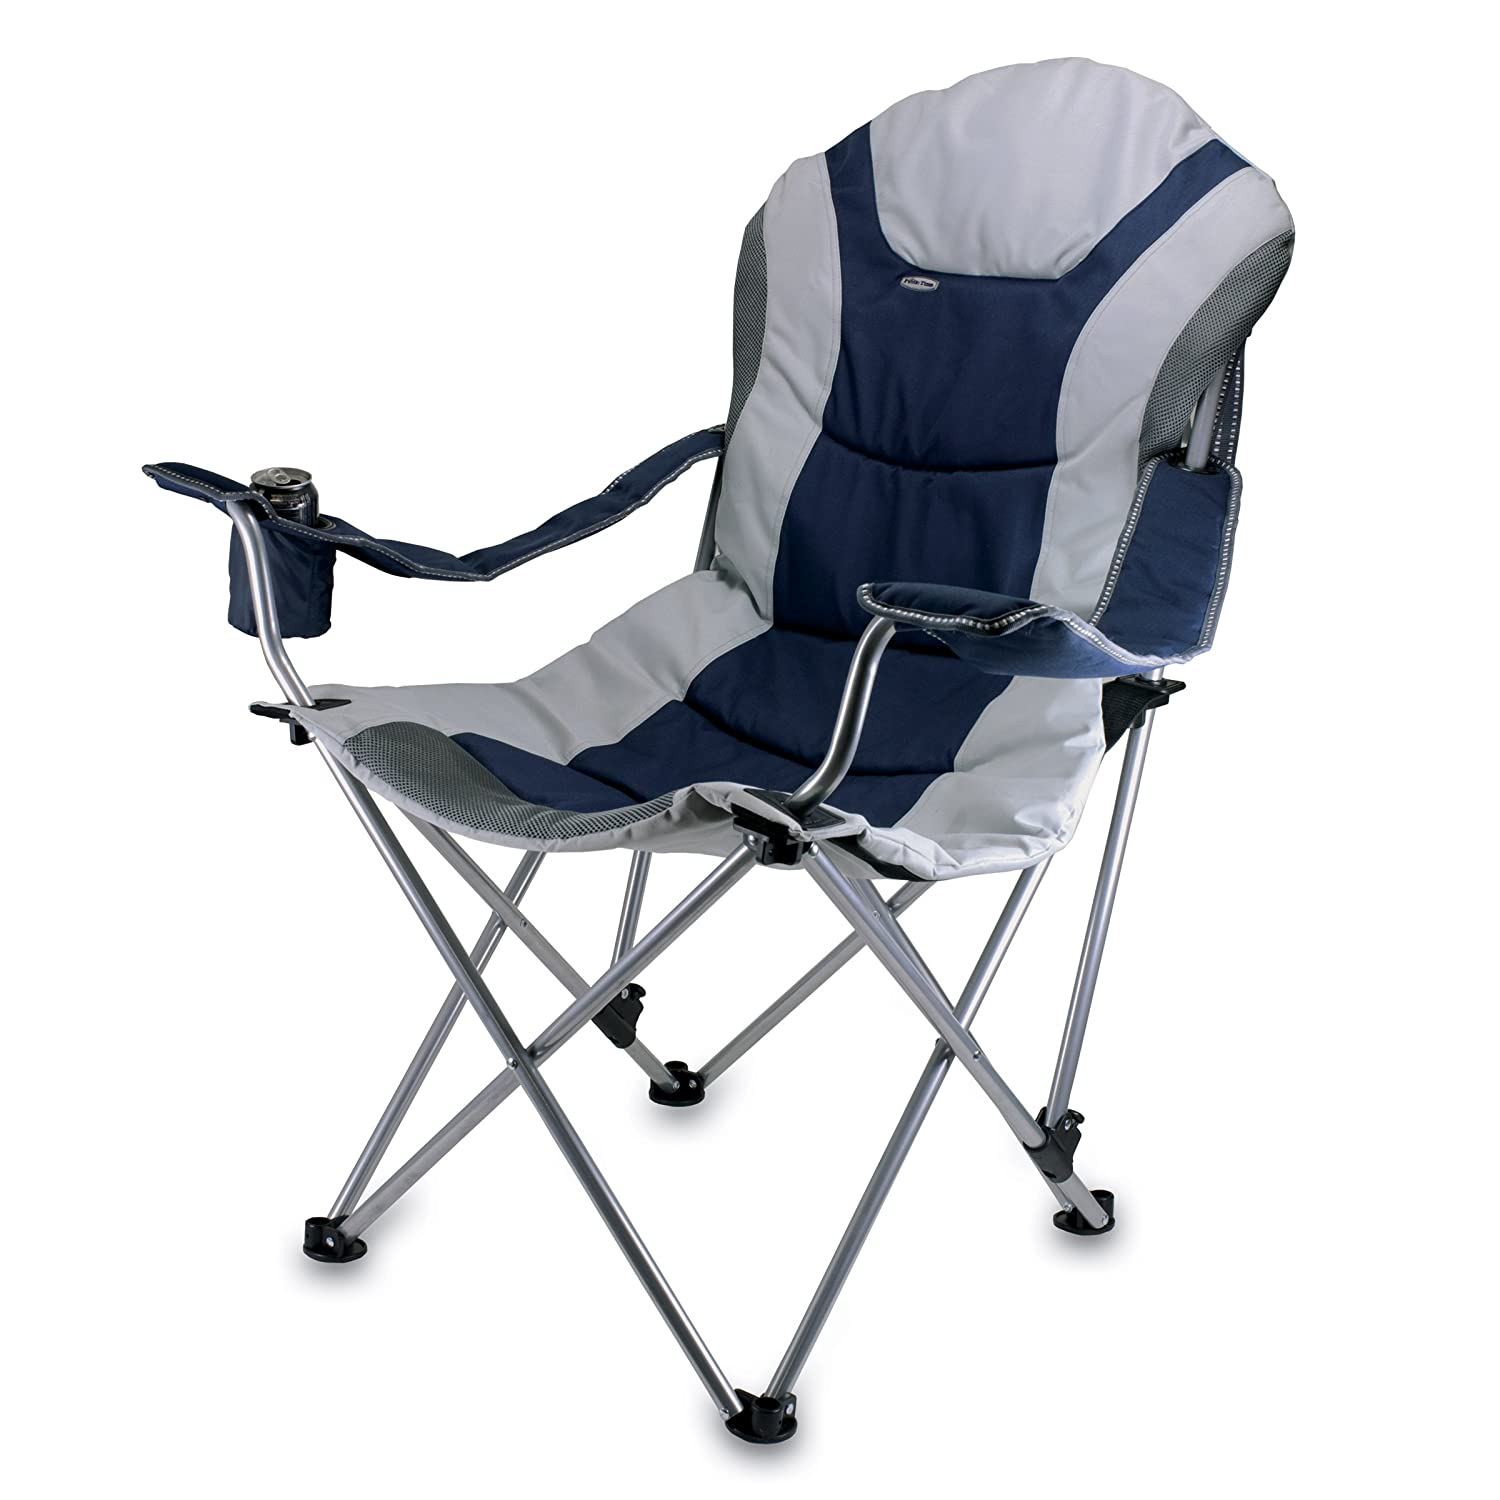 Amazon.com  Picnic Time Portable u0027Reclining C& Chairu0027 Navy  Garden u0026 Outdoor  sc 1 st  Amazon.com & Amazon.com : Picnic Time Portable u0027Reclining Camp Chairu0027 Navy ... islam-shia.org